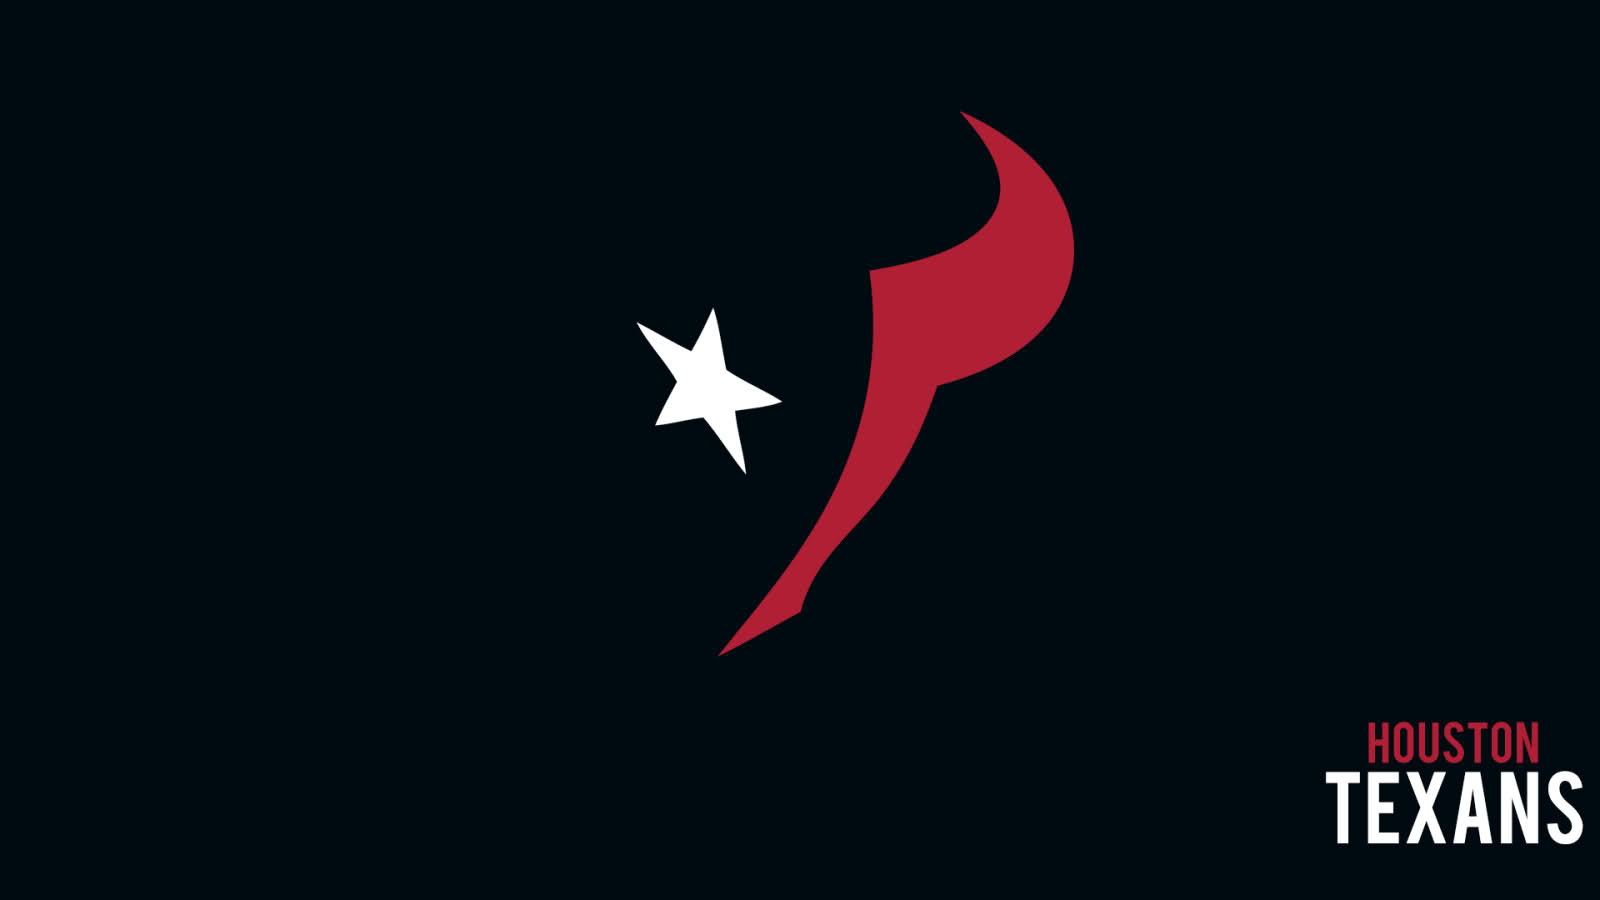 Houston Texans Wallpaper Jj Watt Houston texans hunting buffaloTexans Logo Tattoo